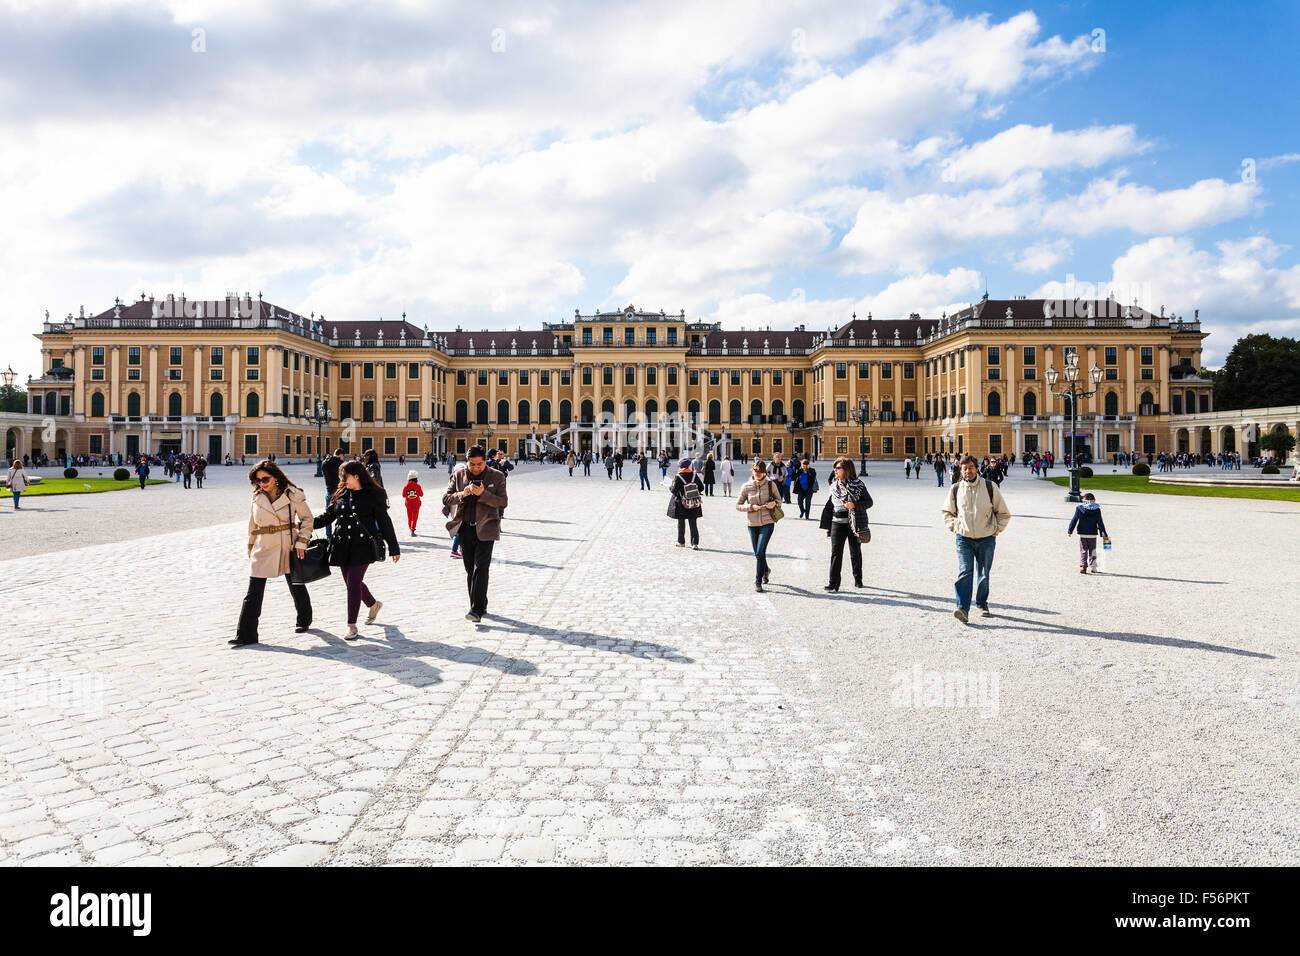 VIENNA, AUSTRIA - SEPTEMBER 29, 2015: tourists go from Schloss Schonbrunn palace to main entrance. Schonbrunn Palace - Stock Image